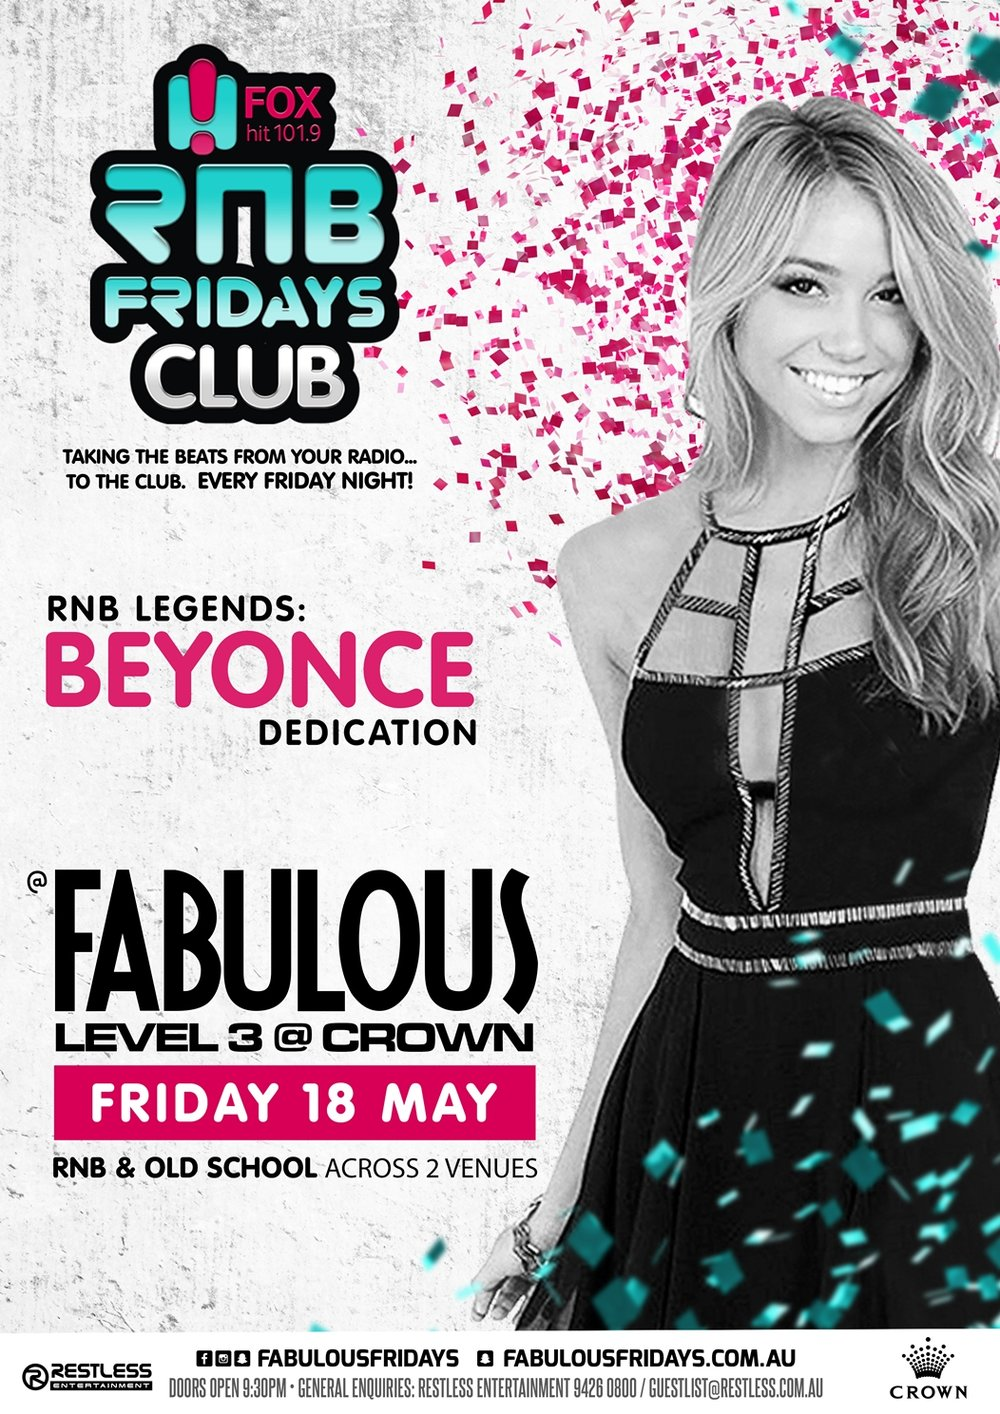 180518_Fabulous_beyonce dedication_LOW.JPG